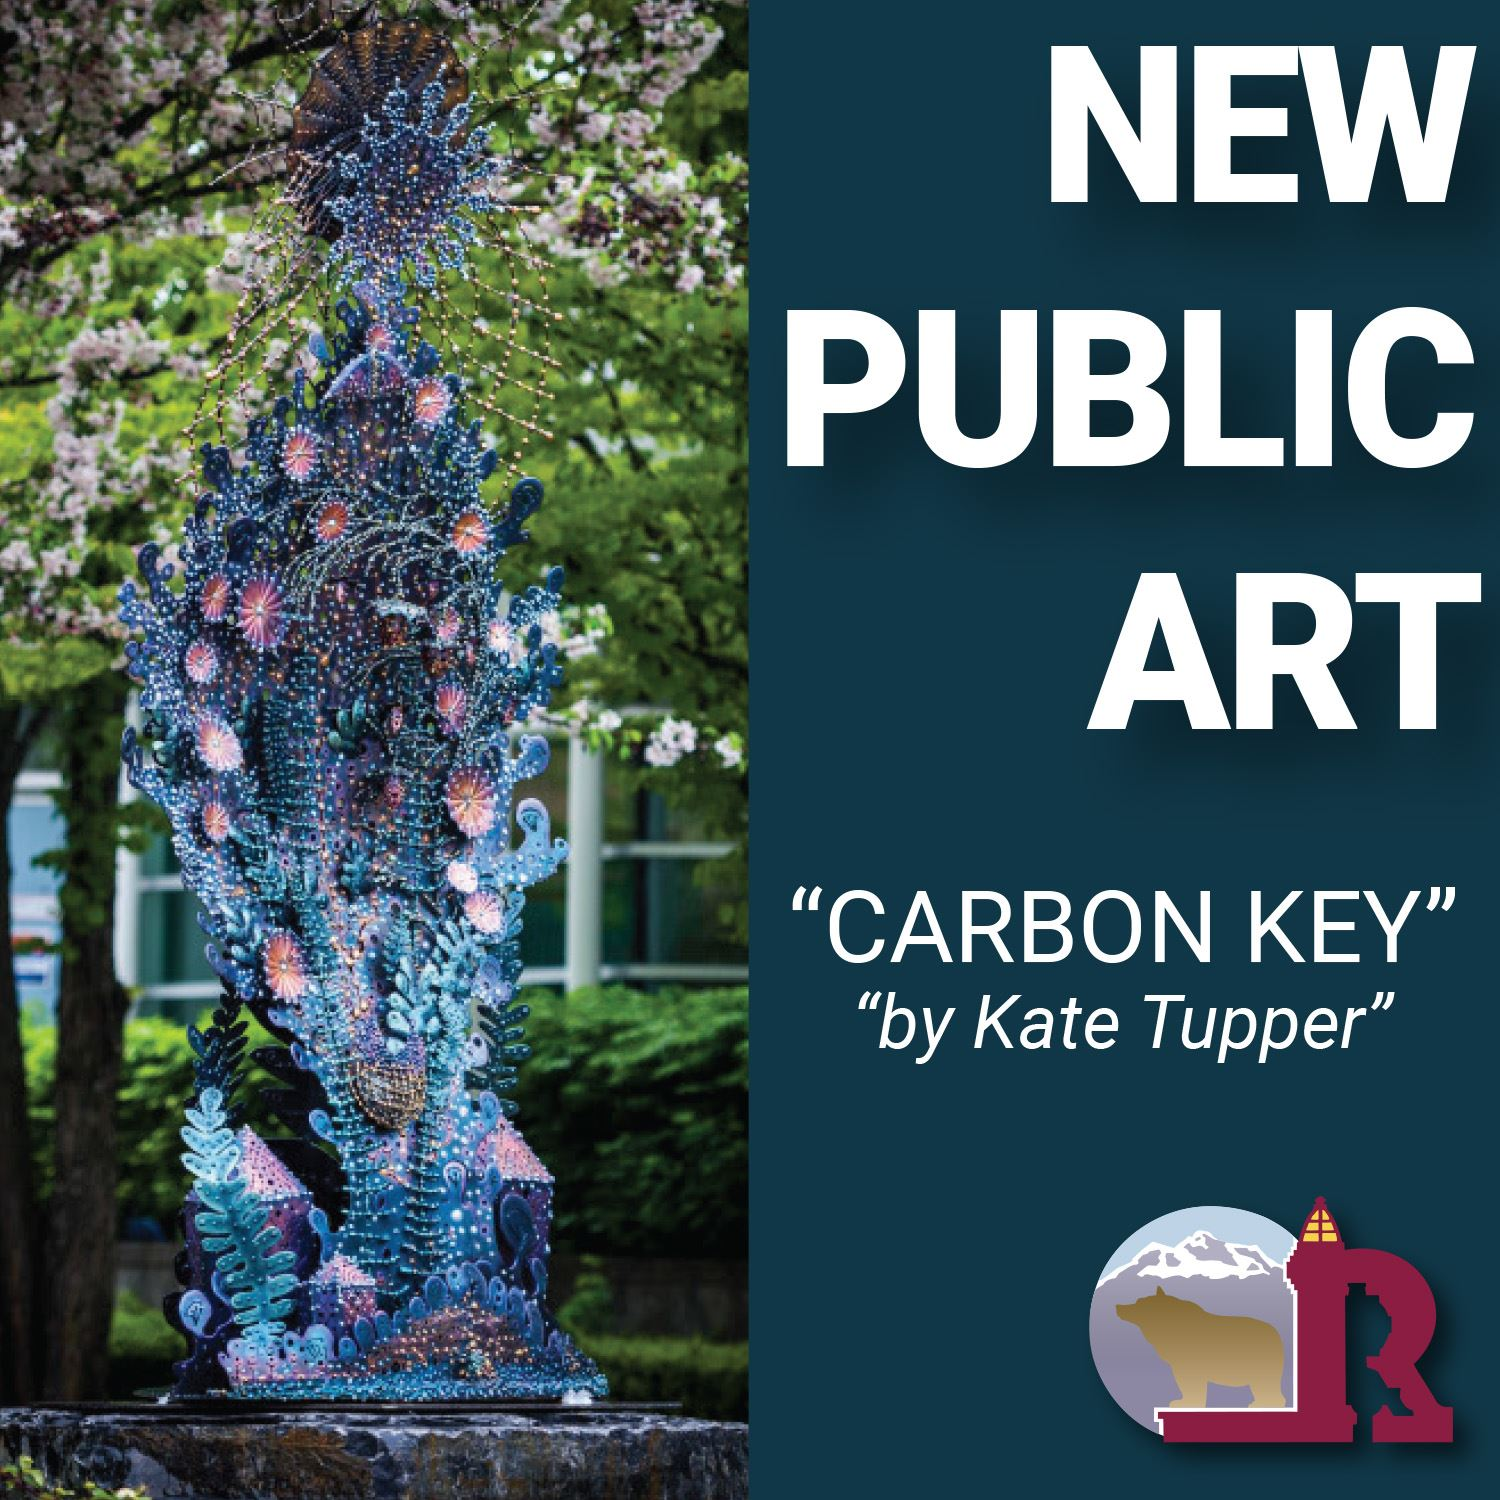 New Public Art-Carbon Key-2021-05-04